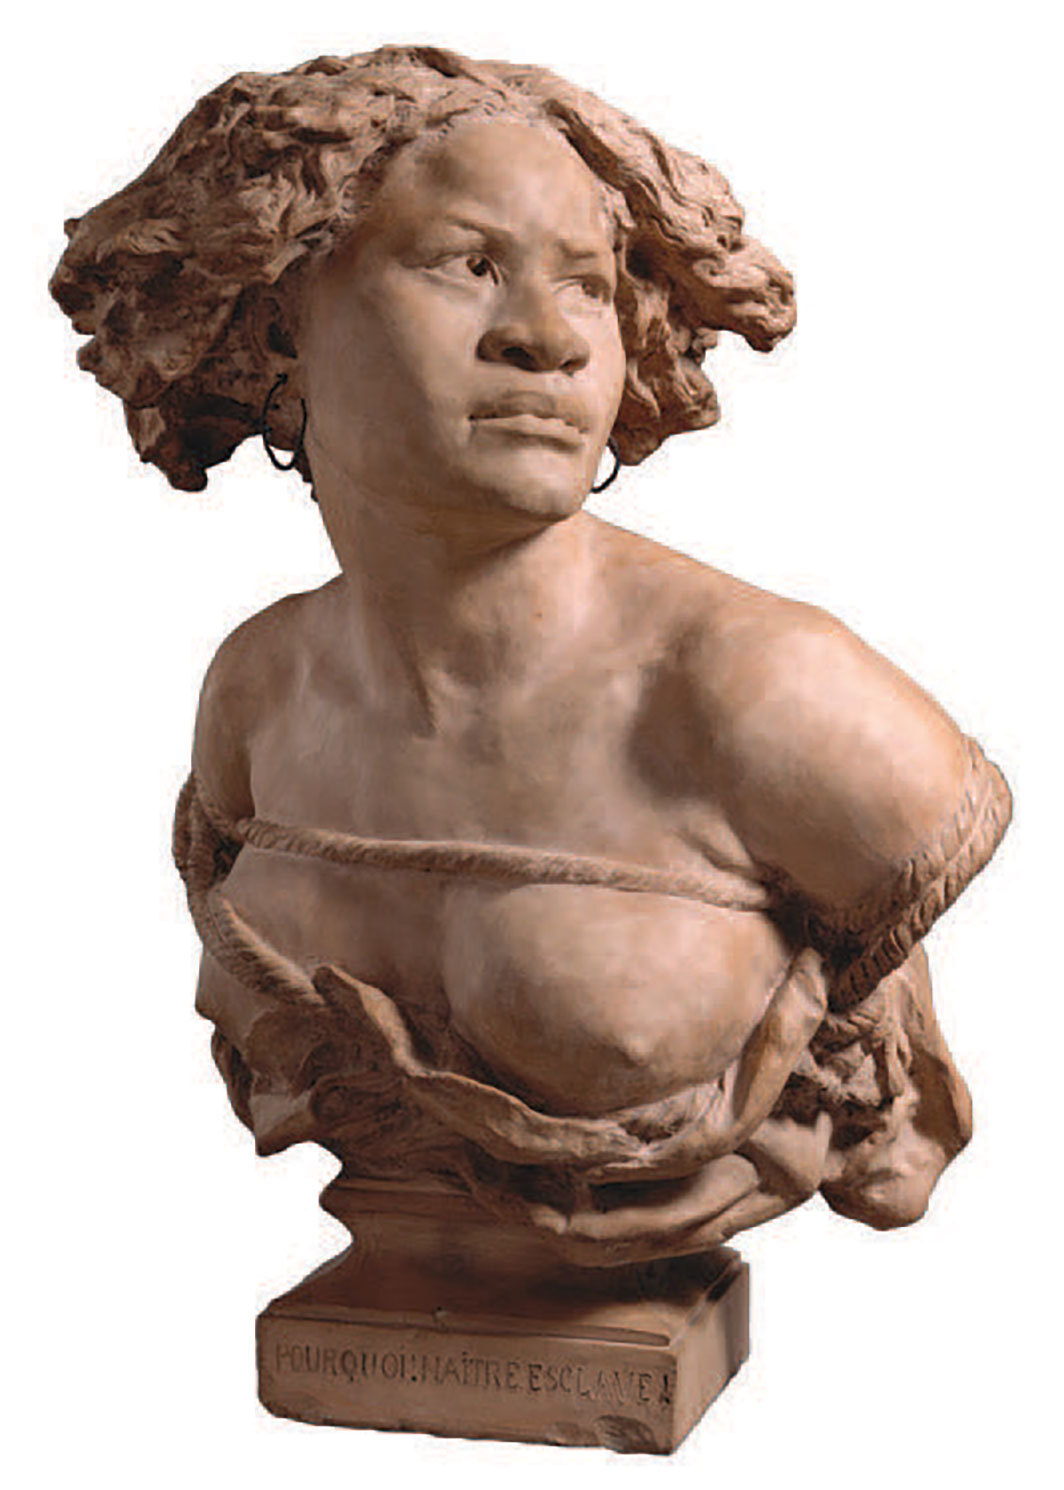 "Workshop of Jean-Baptiste Carpeaux, Pourquoi! Naître esclave! (Why! Born Enslaved!), 1872, cast terra-cotta, 24 × 18 × 14""."